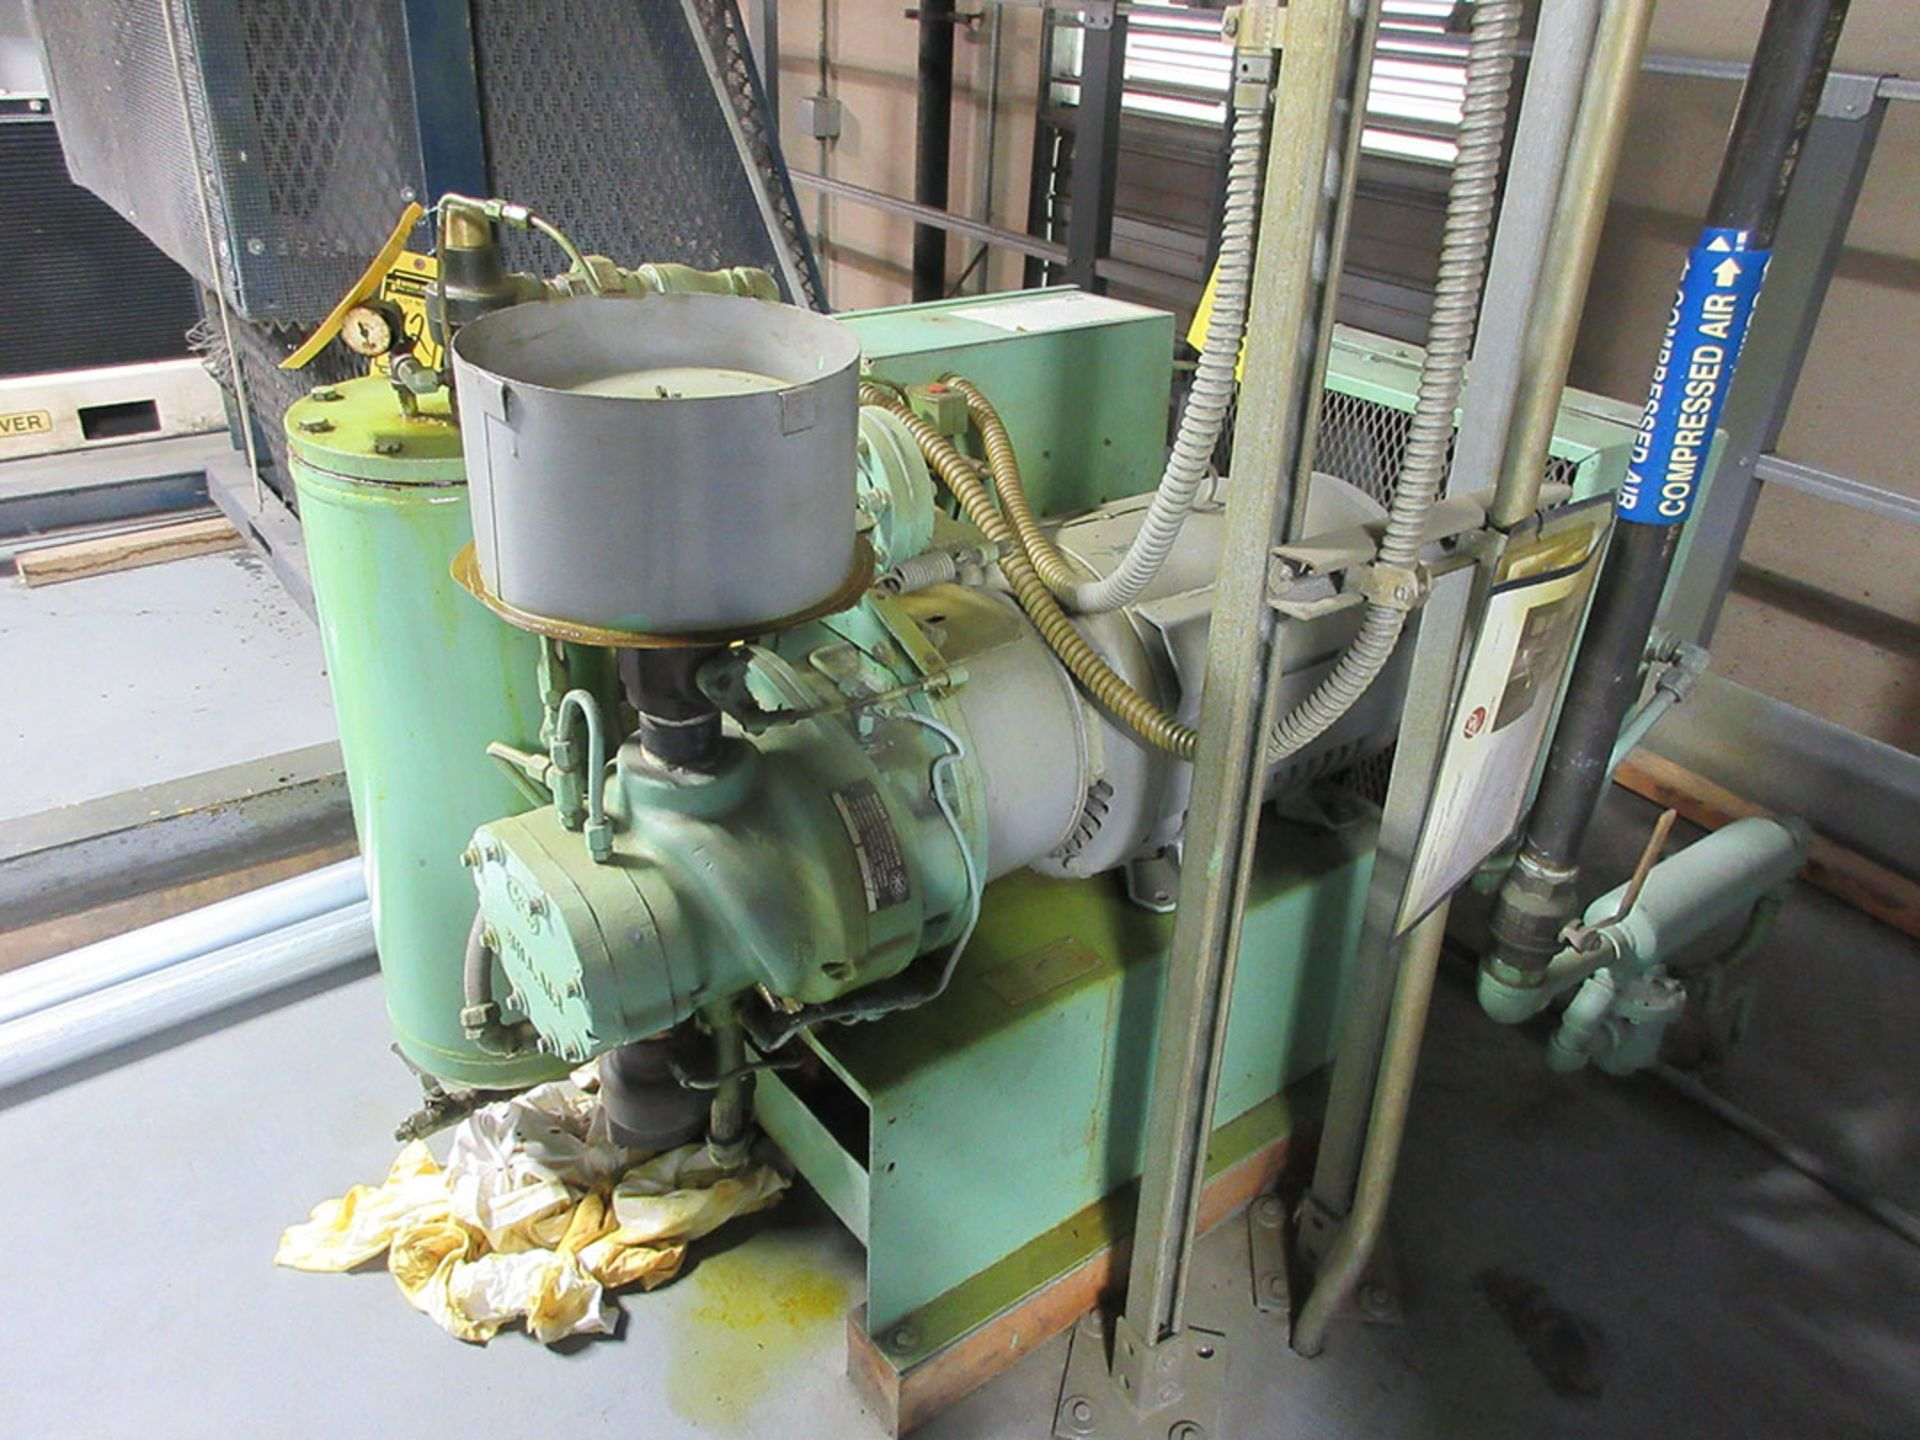 Lot 109 - SULLAIR 30 HP ROTARY SCREW AIR COMPRESSOR; MODEL 10-30, S/N 41975GGH ***EXCLUSIVE RIGGER -